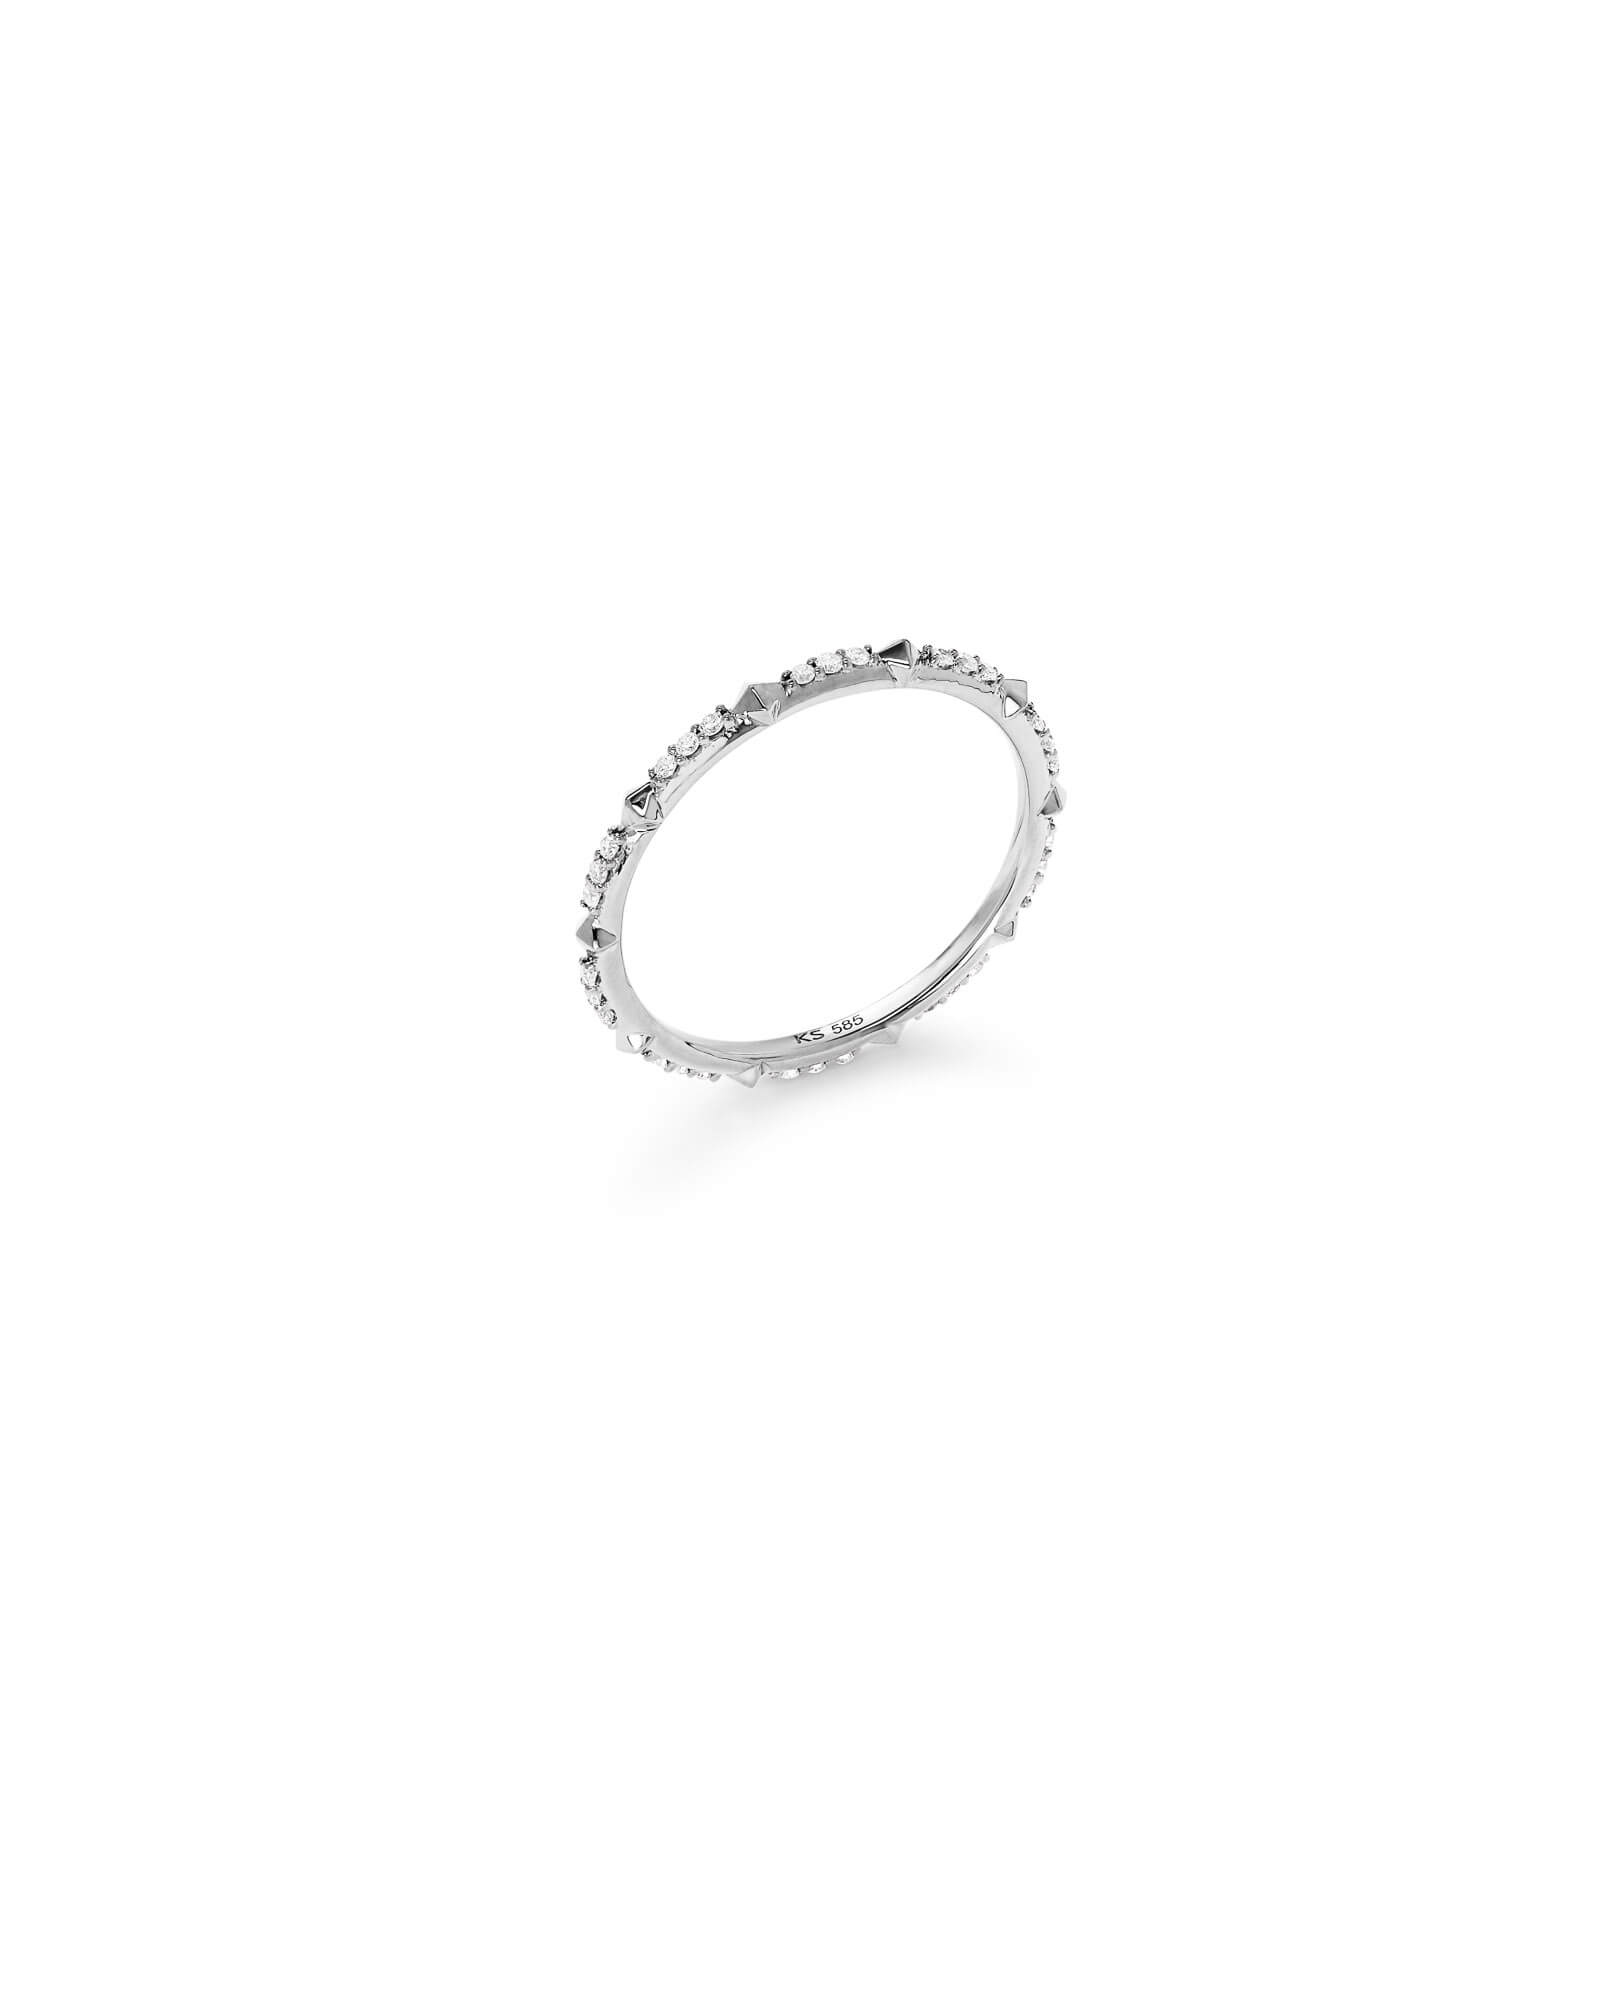 Astrid 14k White Gold Ring